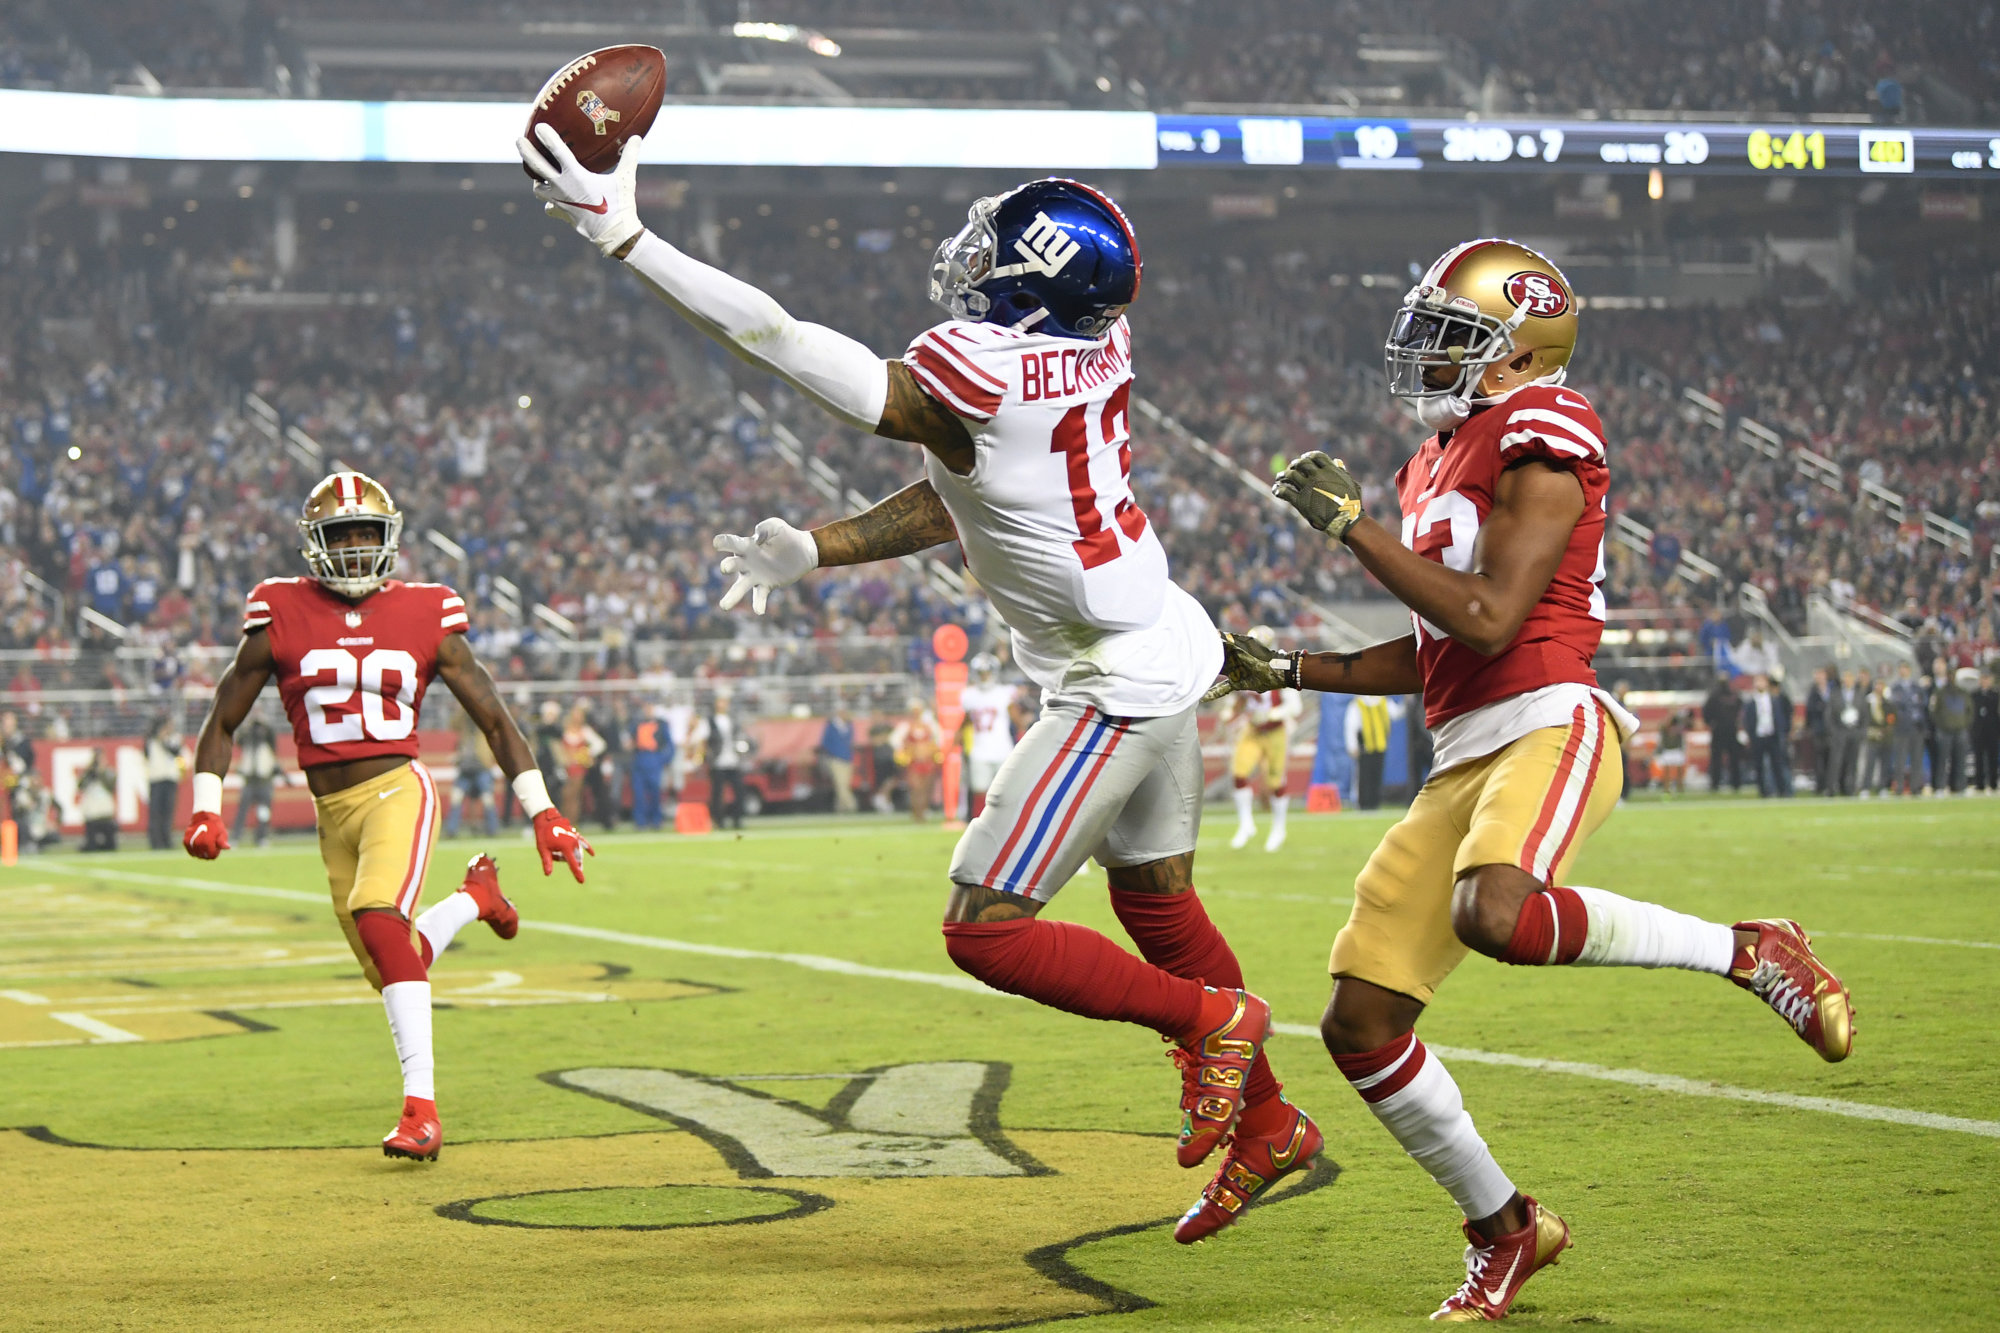 SANTA CLARA, CA - NOVEMBER 12: Odell Beckham #13 of the New York Giants is unable to make a catch against the San Francisco 49ers during their NFL game at Levi's Stadium on November 12, 2018 in Santa Clara, California. (Photo by Thearon W. Henderson/Getty Images)